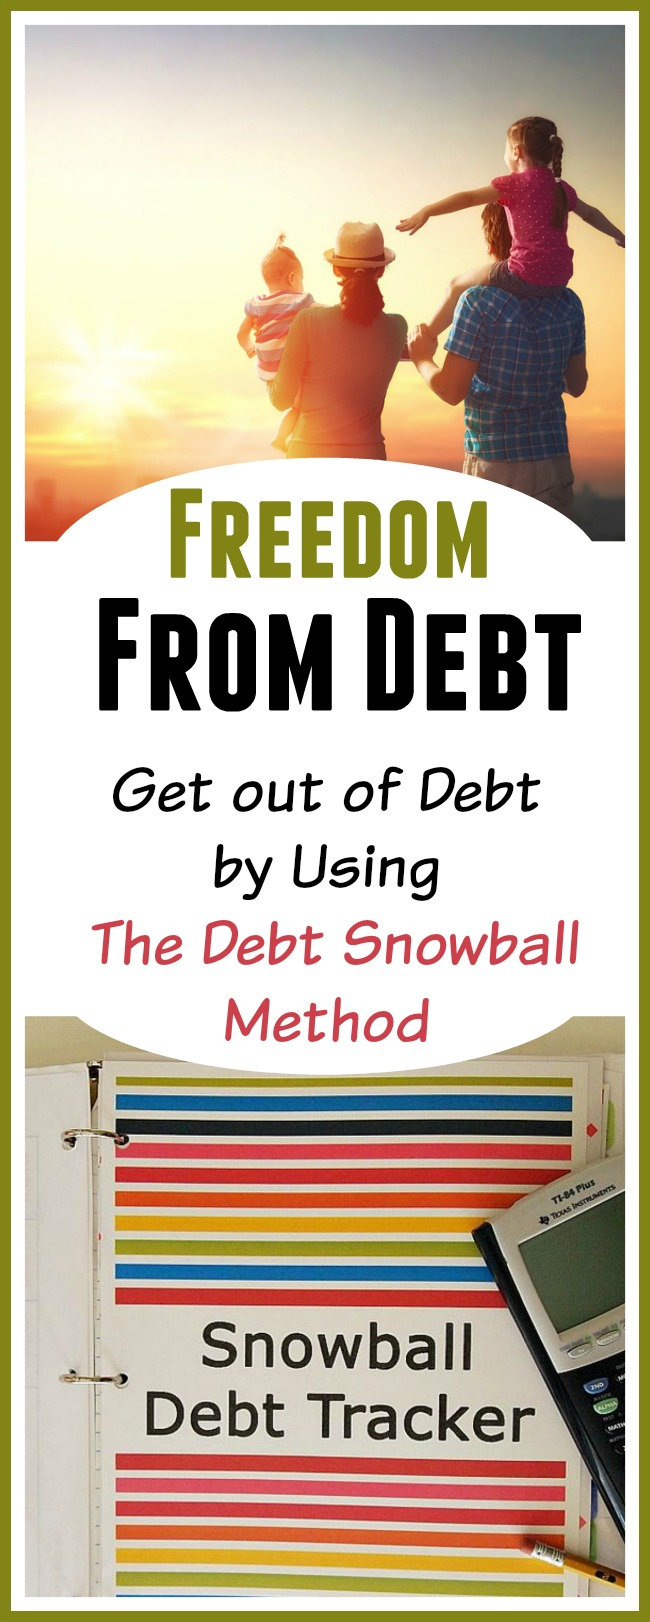 Get Out of Debt By Using The Debt Snowball Method - Are you trying to pay down debt but you're not getting anywhere? Consider using the debt snowball system to get rid of your debt for good. Here's how it works and also a list of Debt Snowball Calculators that you can use. | budgeting, how to get out of debt, paying off bills, #debtFree #debt #payOffDebt #payDownDebt #getOutOfDebt #debtSnowball #daveRamsey